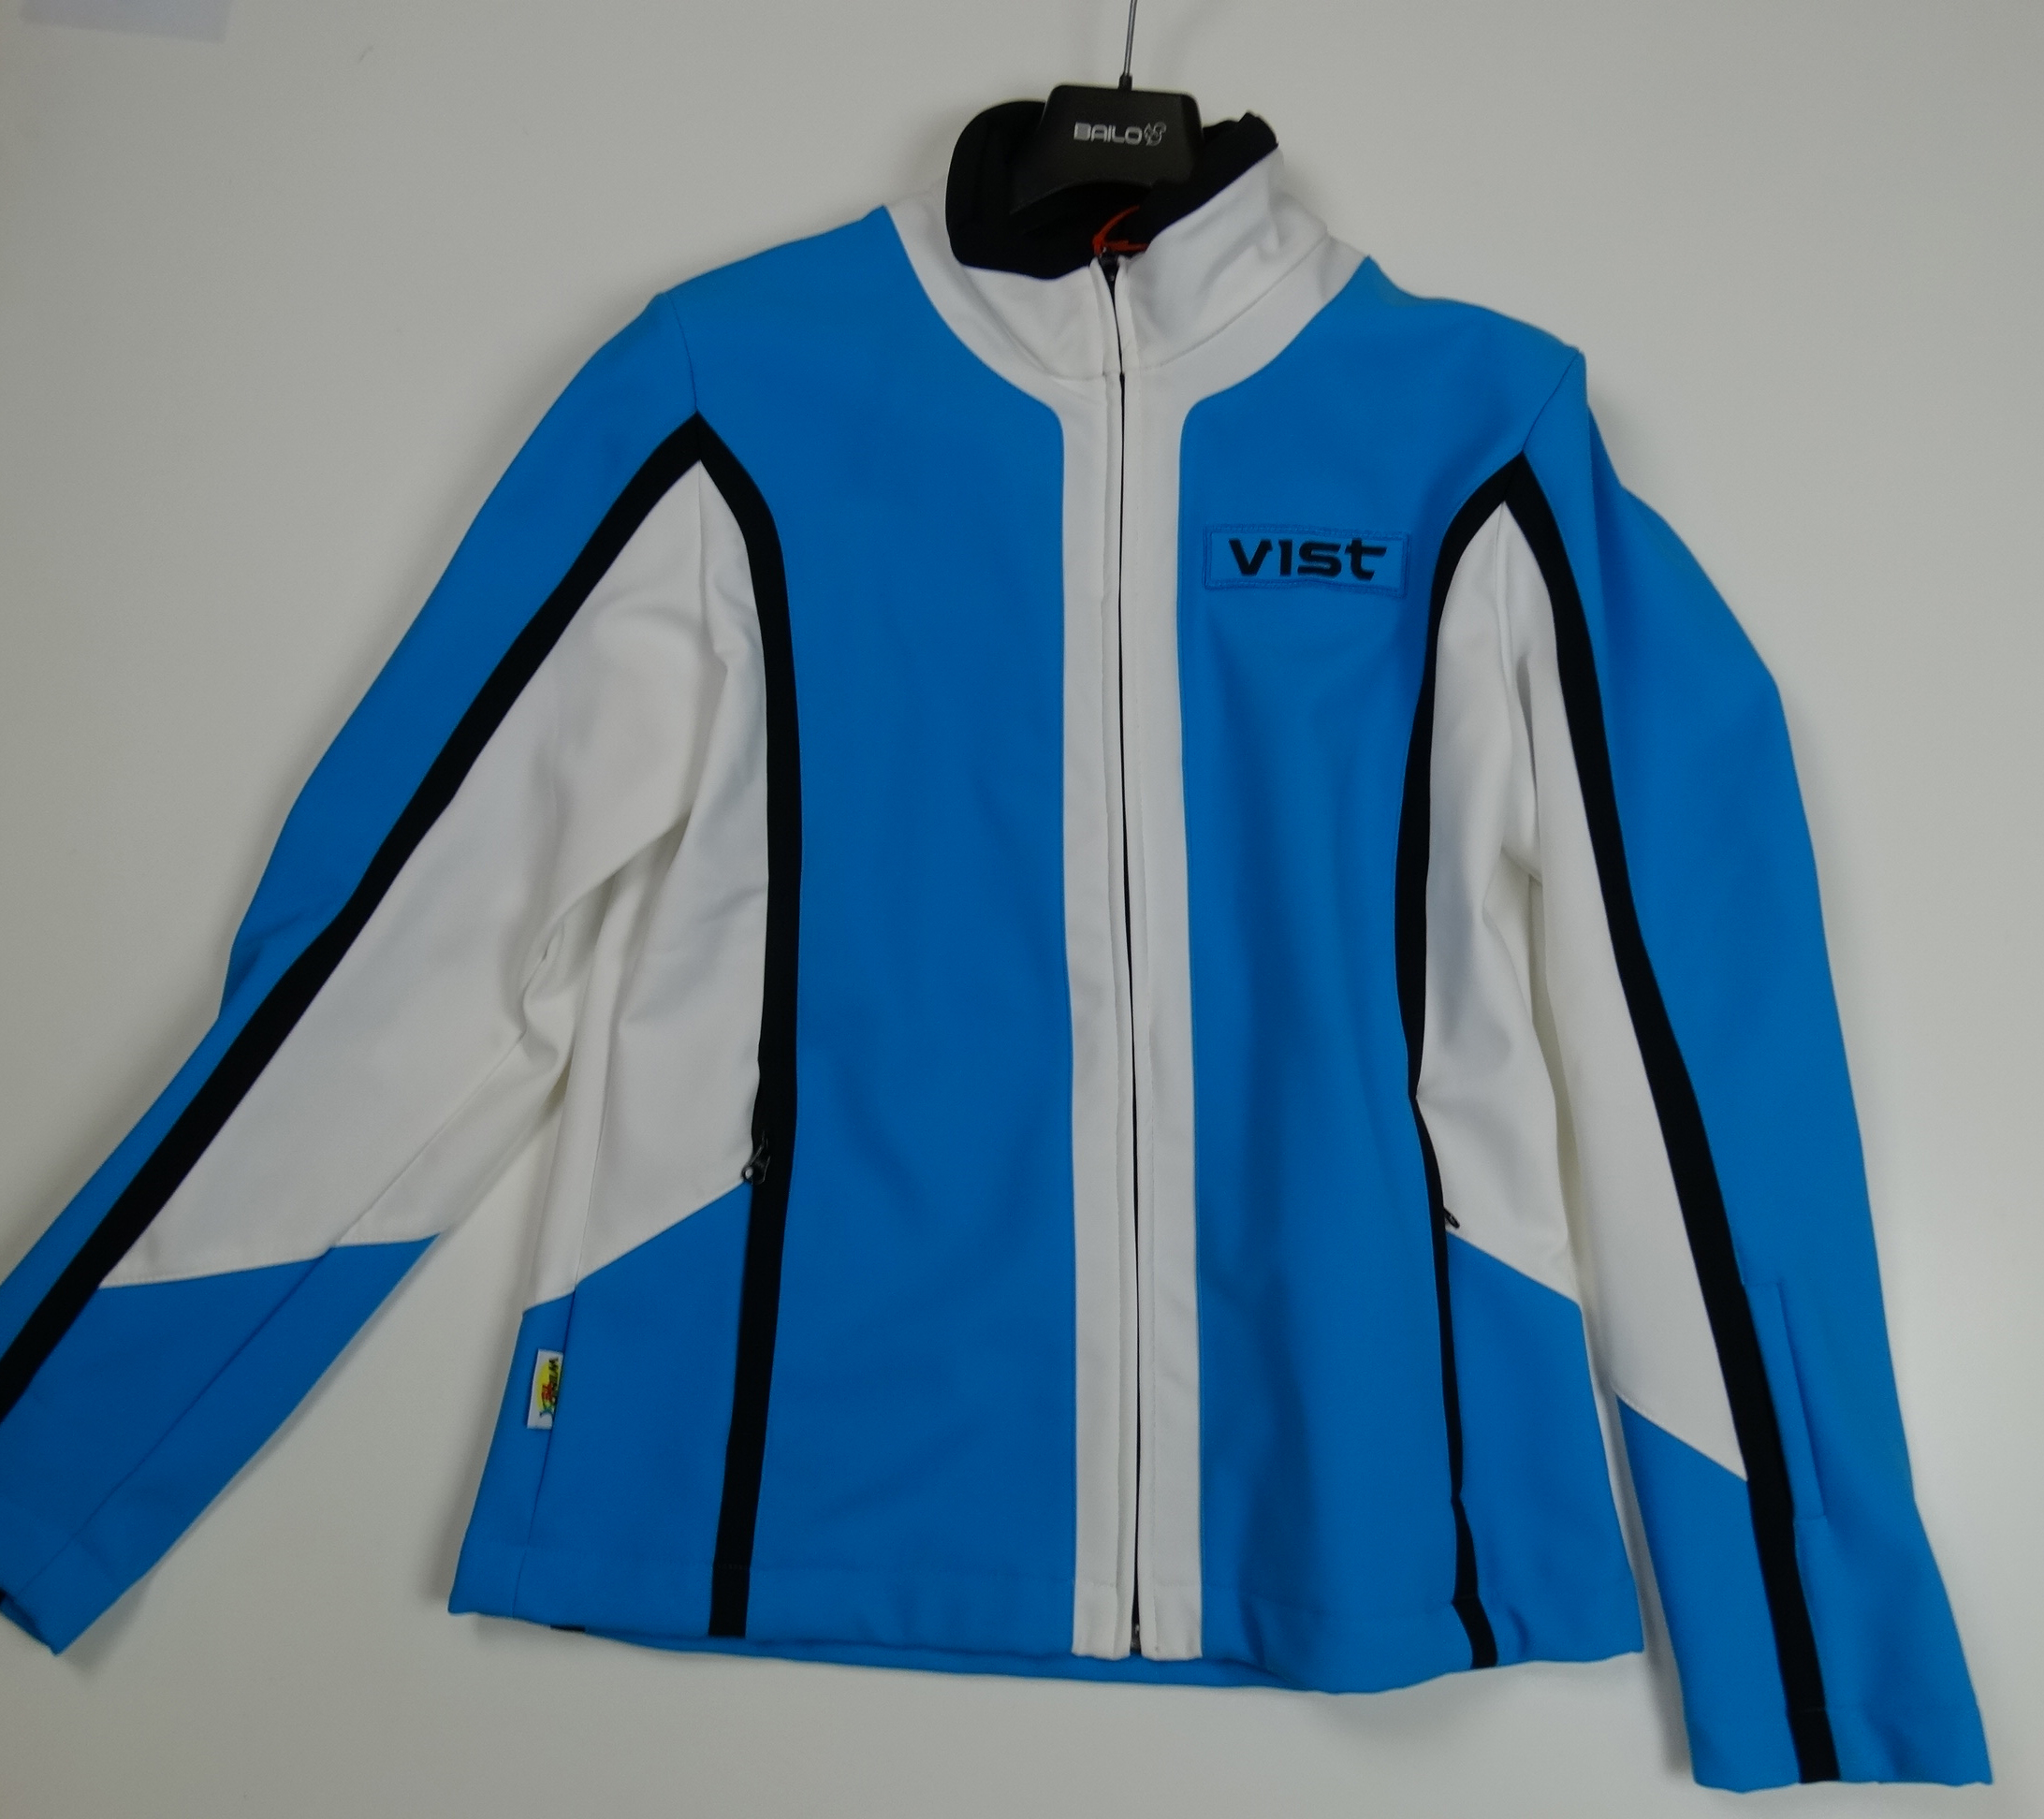 Vist Olimpic Race Jacket